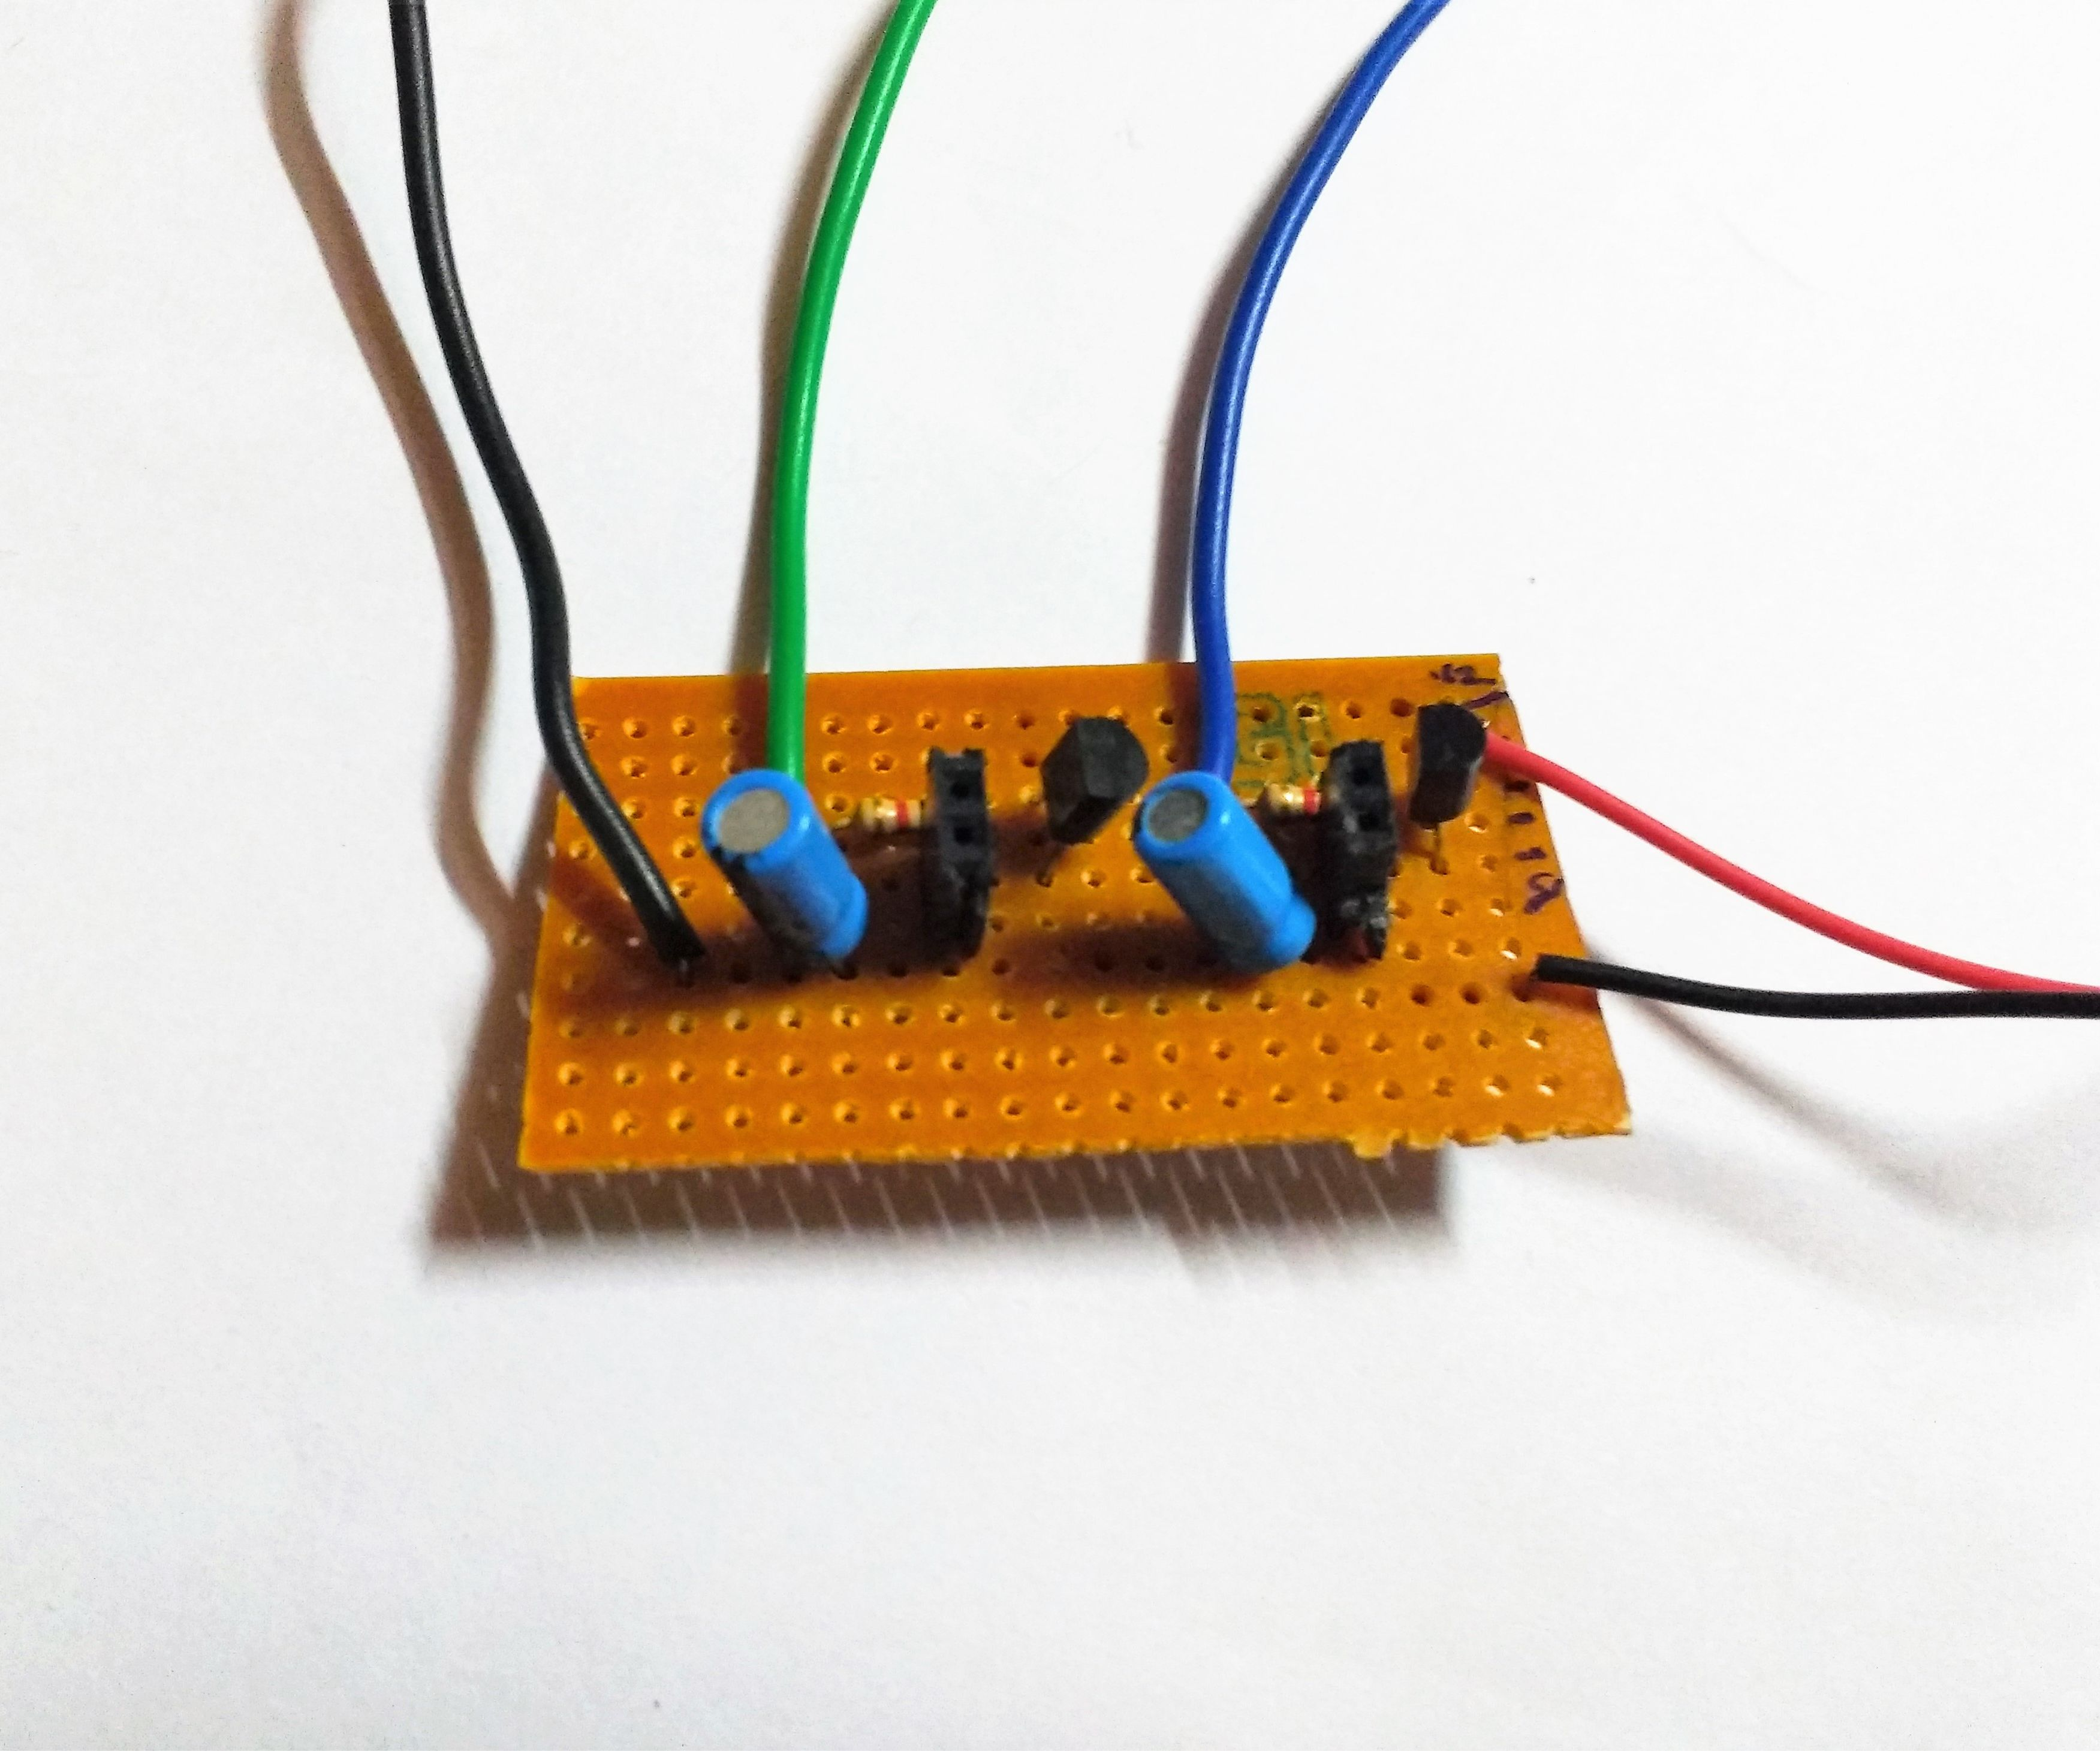 Simple, Cheap Motor Driver Board for Arduino